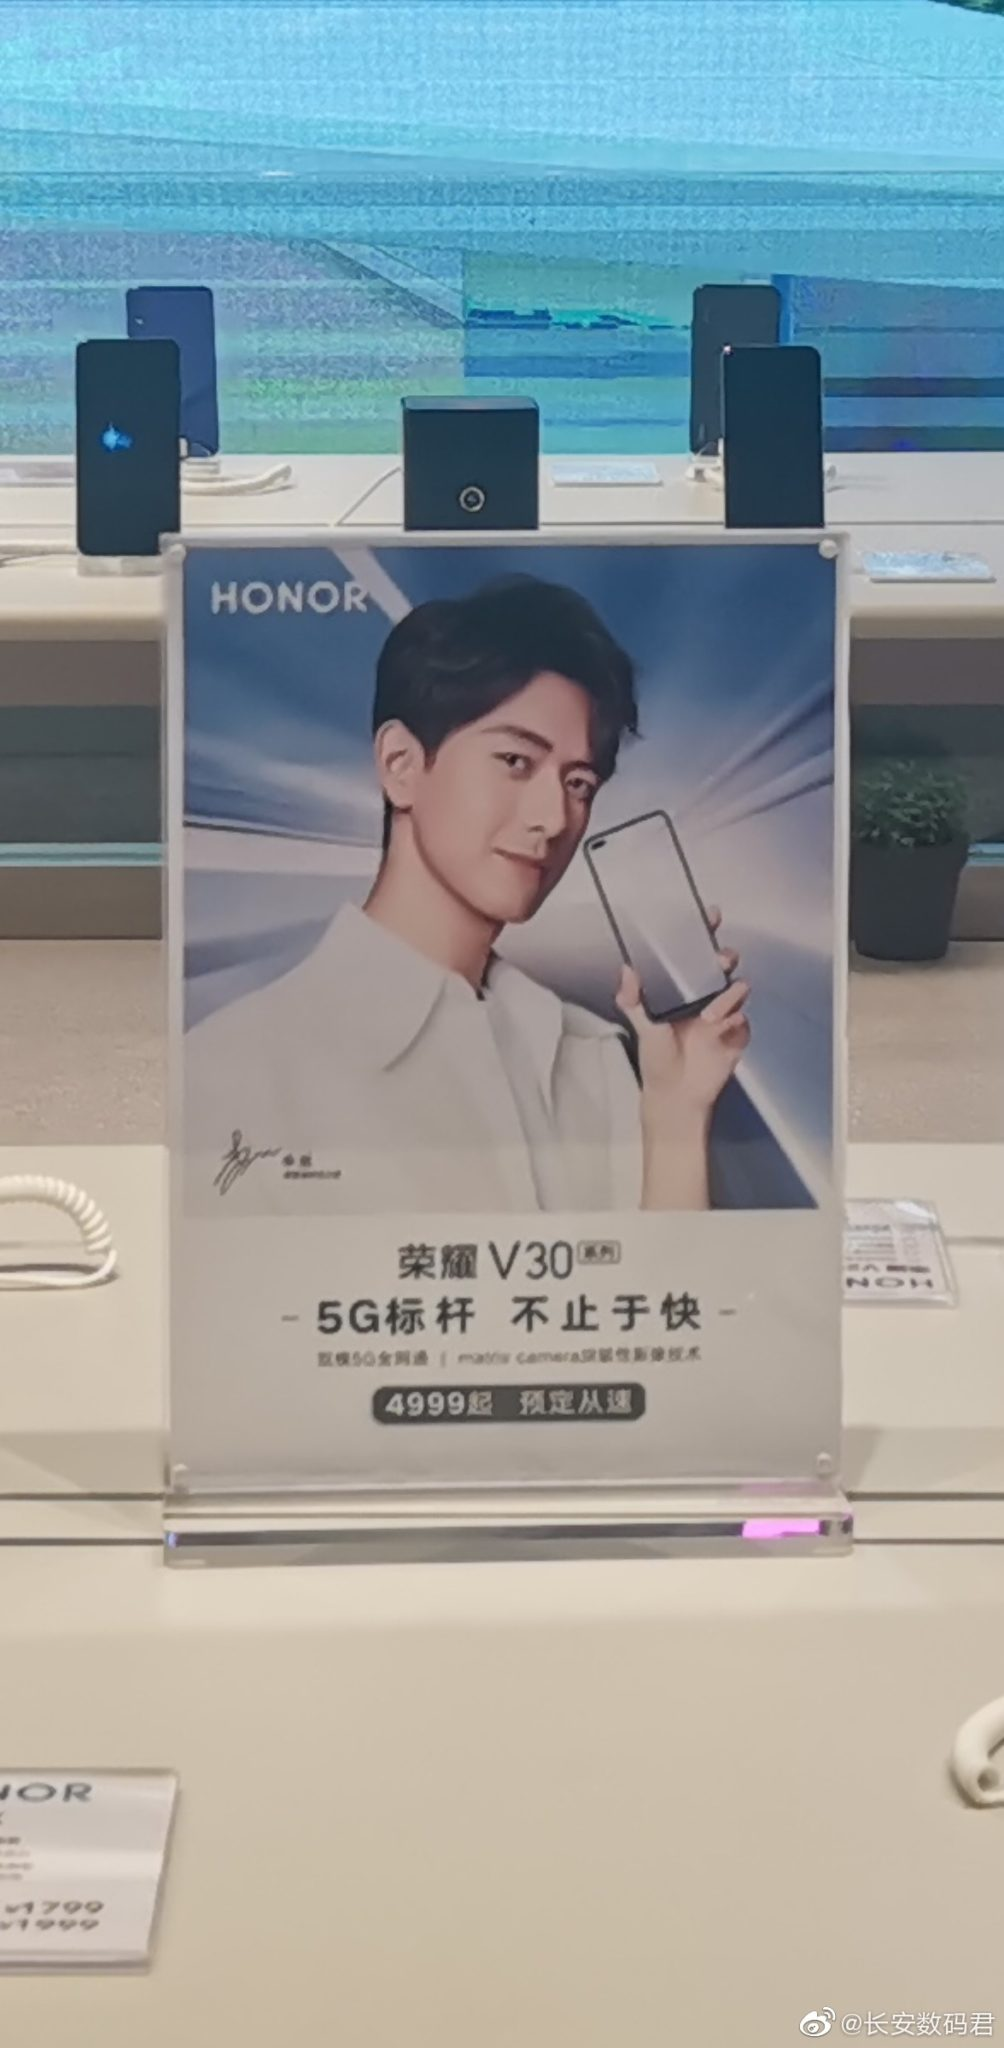 Honor V30 5G shows up in hands-on images ahead of the launch